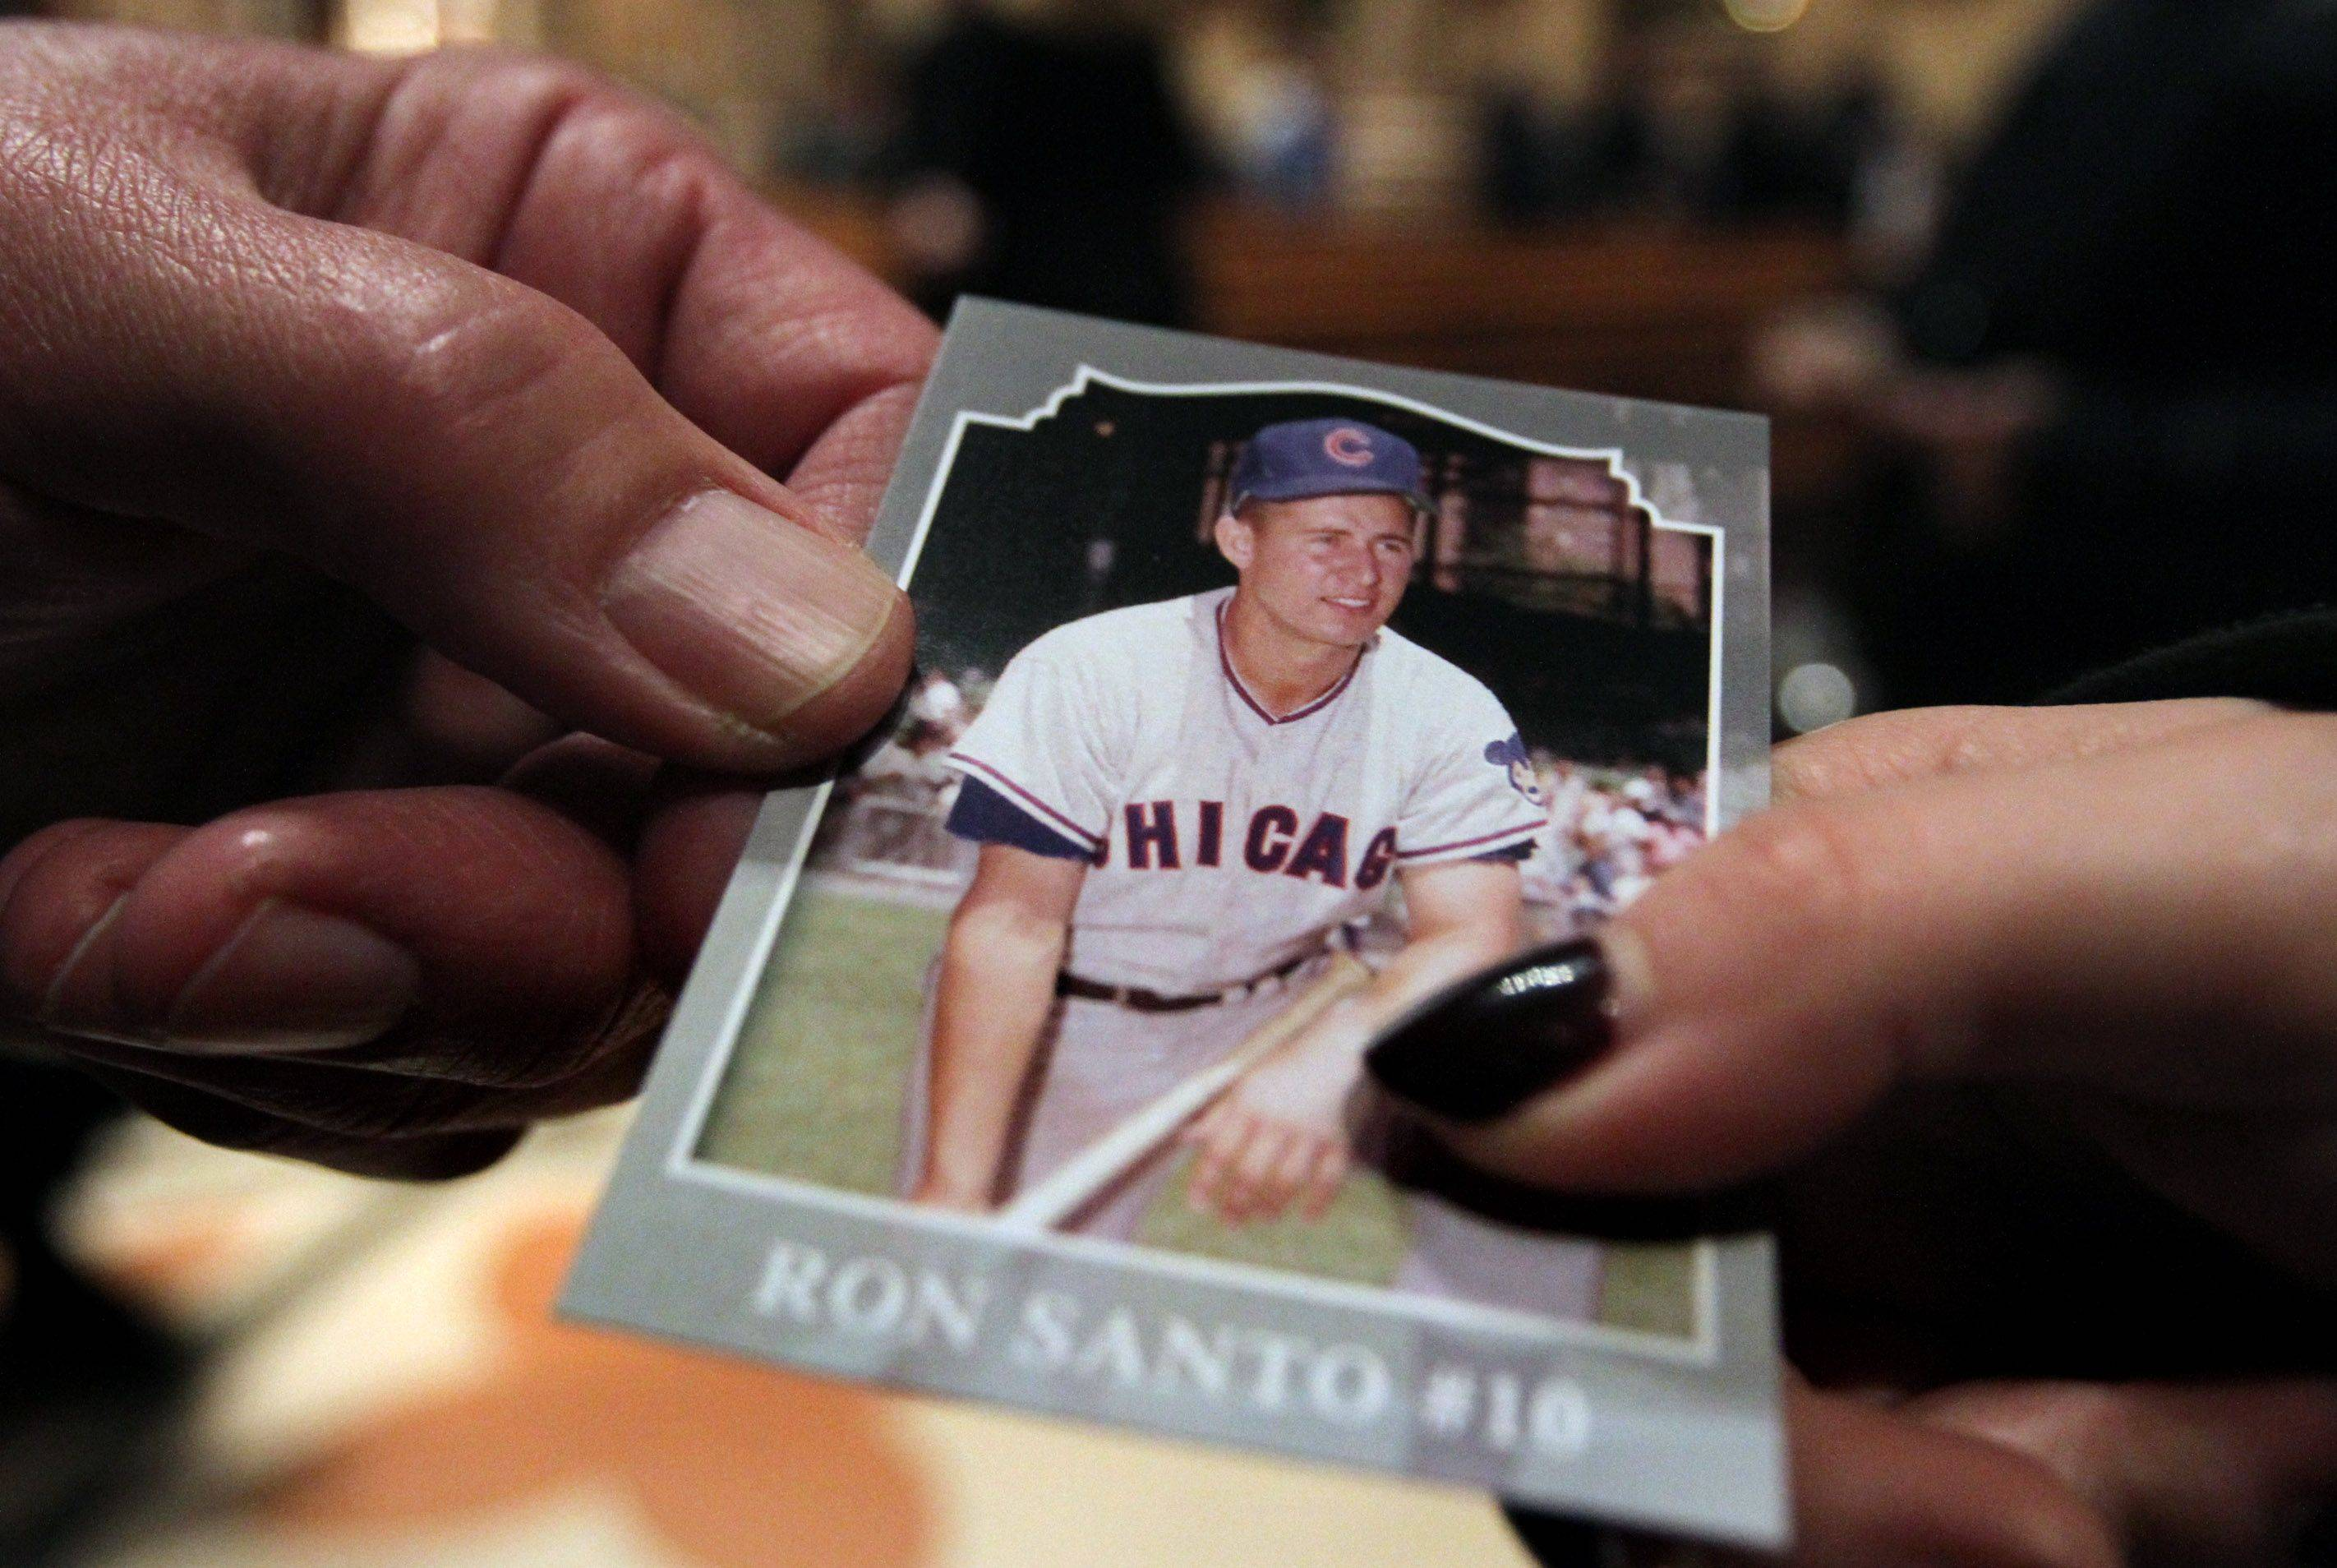 Chicago Cubs fans received a Ron Santo card as they entered the public visitation.